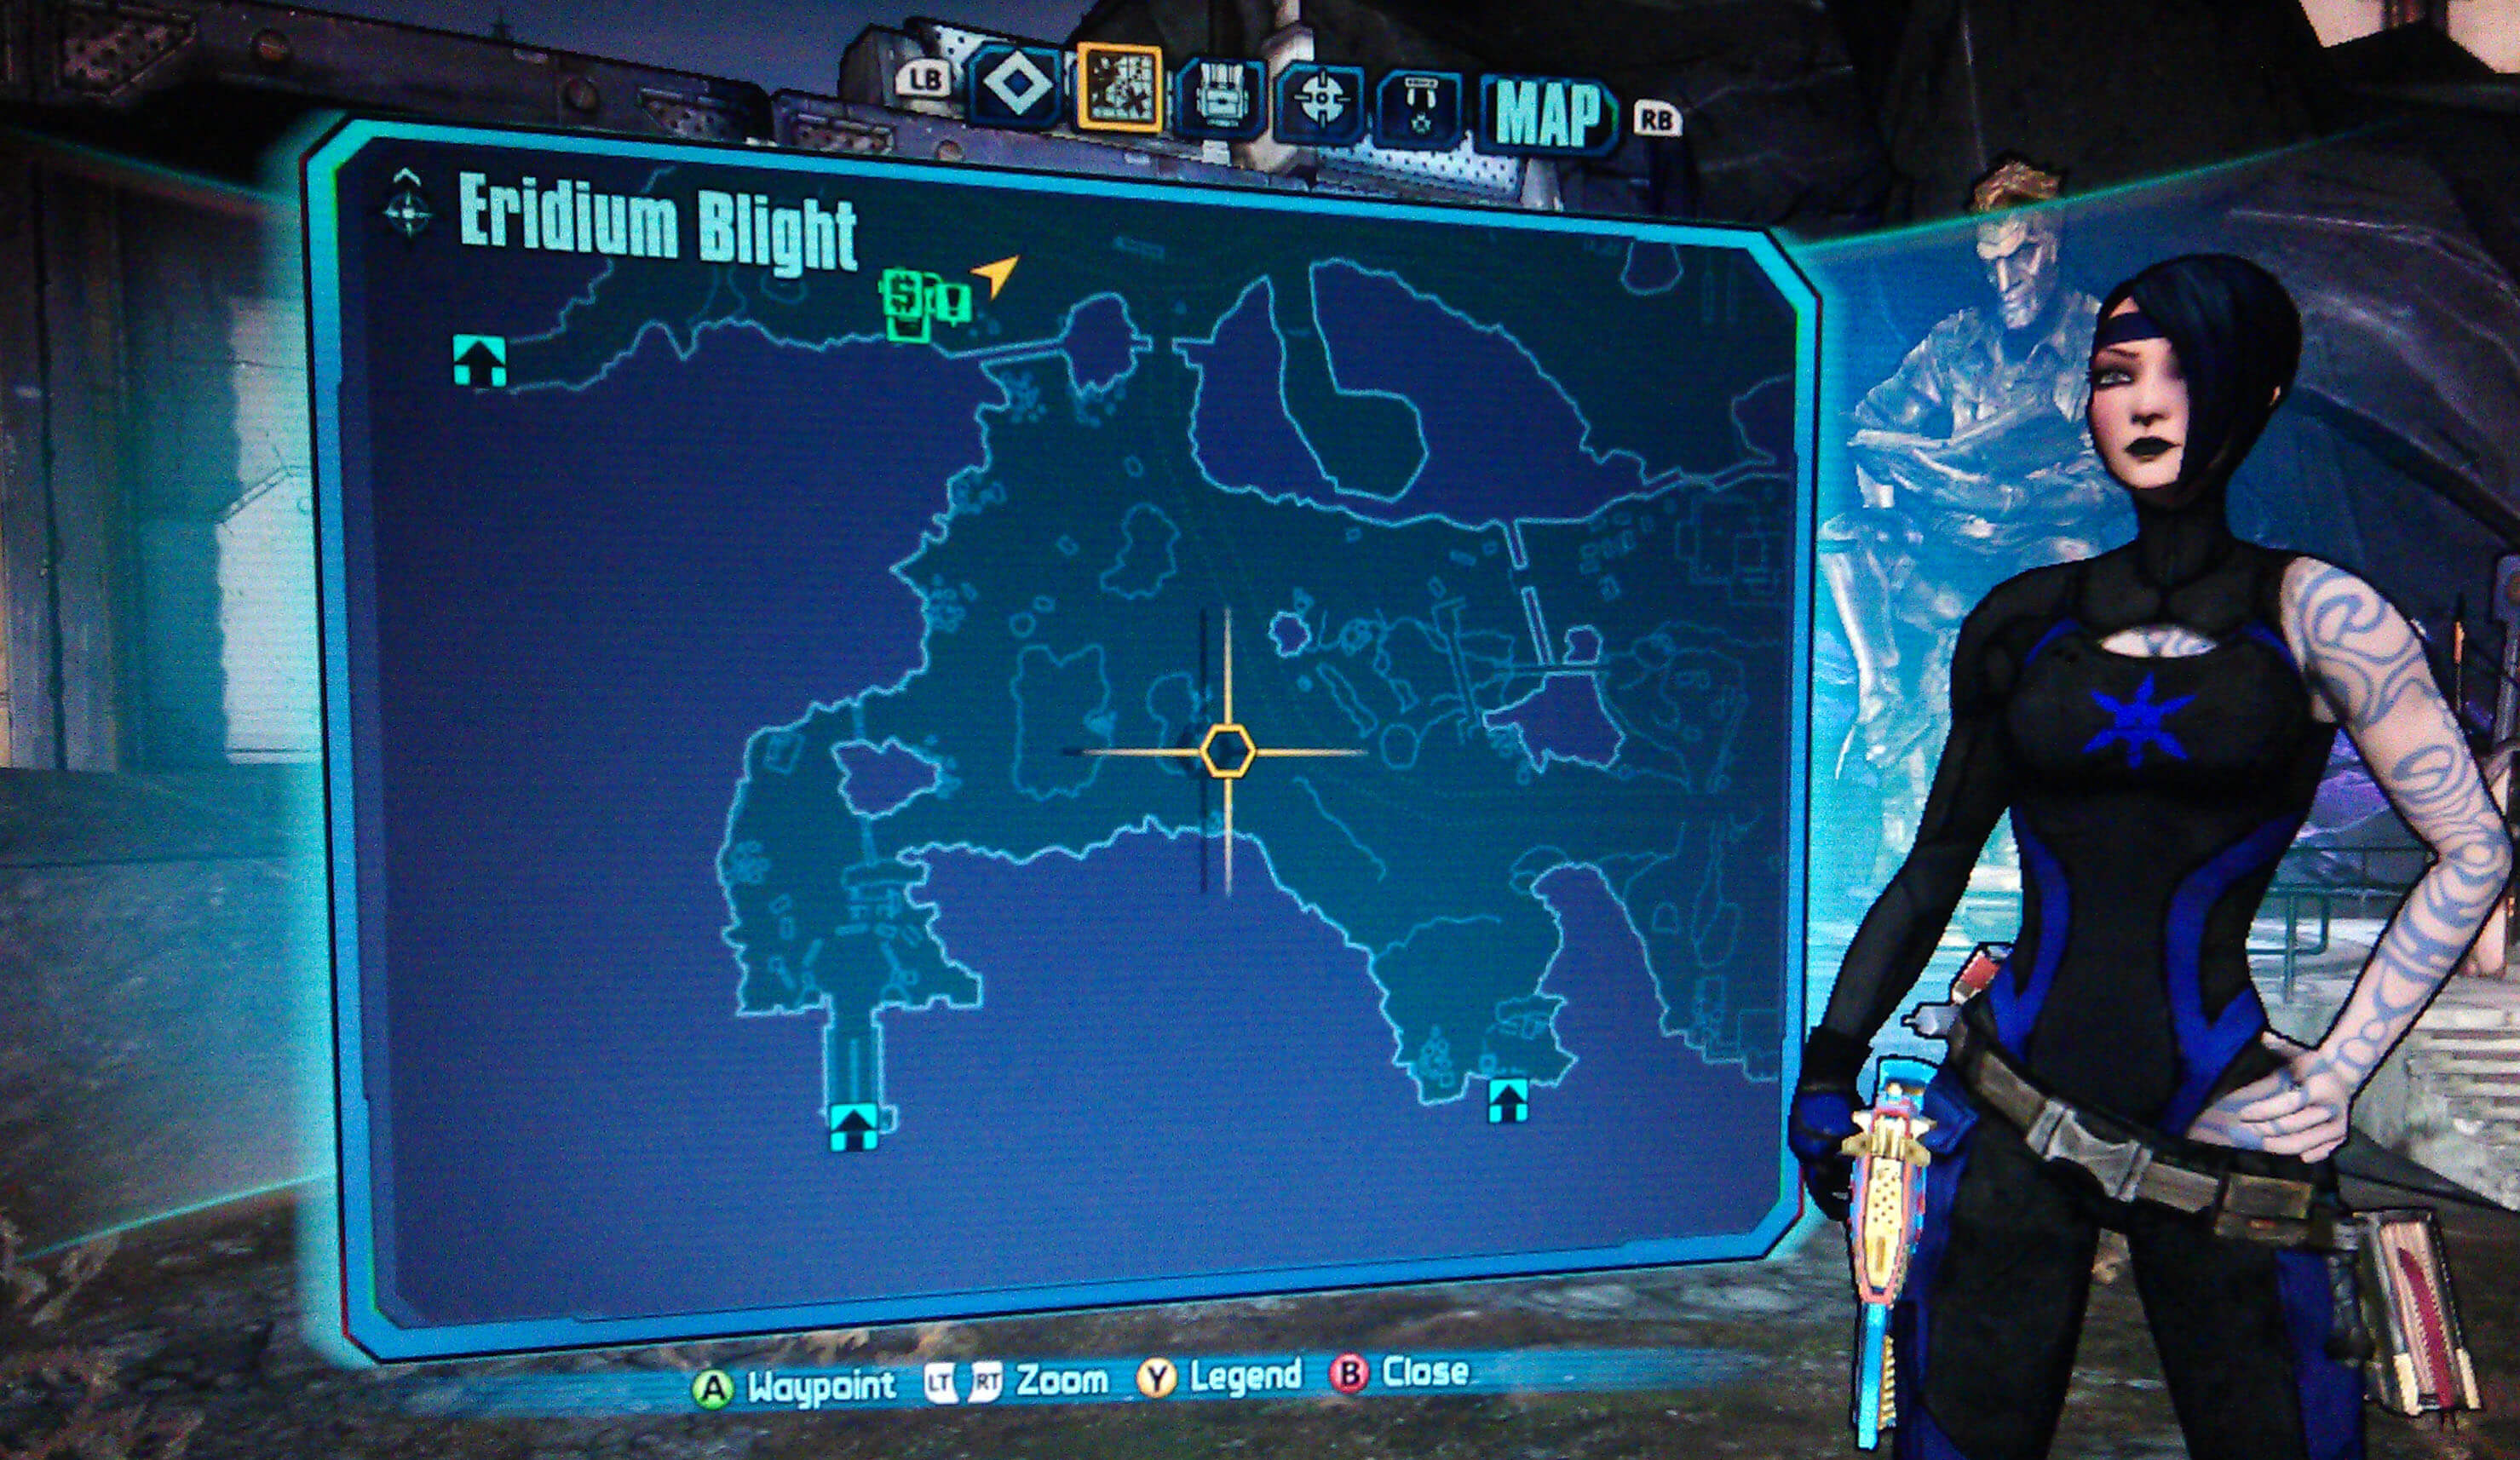 how to get unlimited eridium in borderlands 2